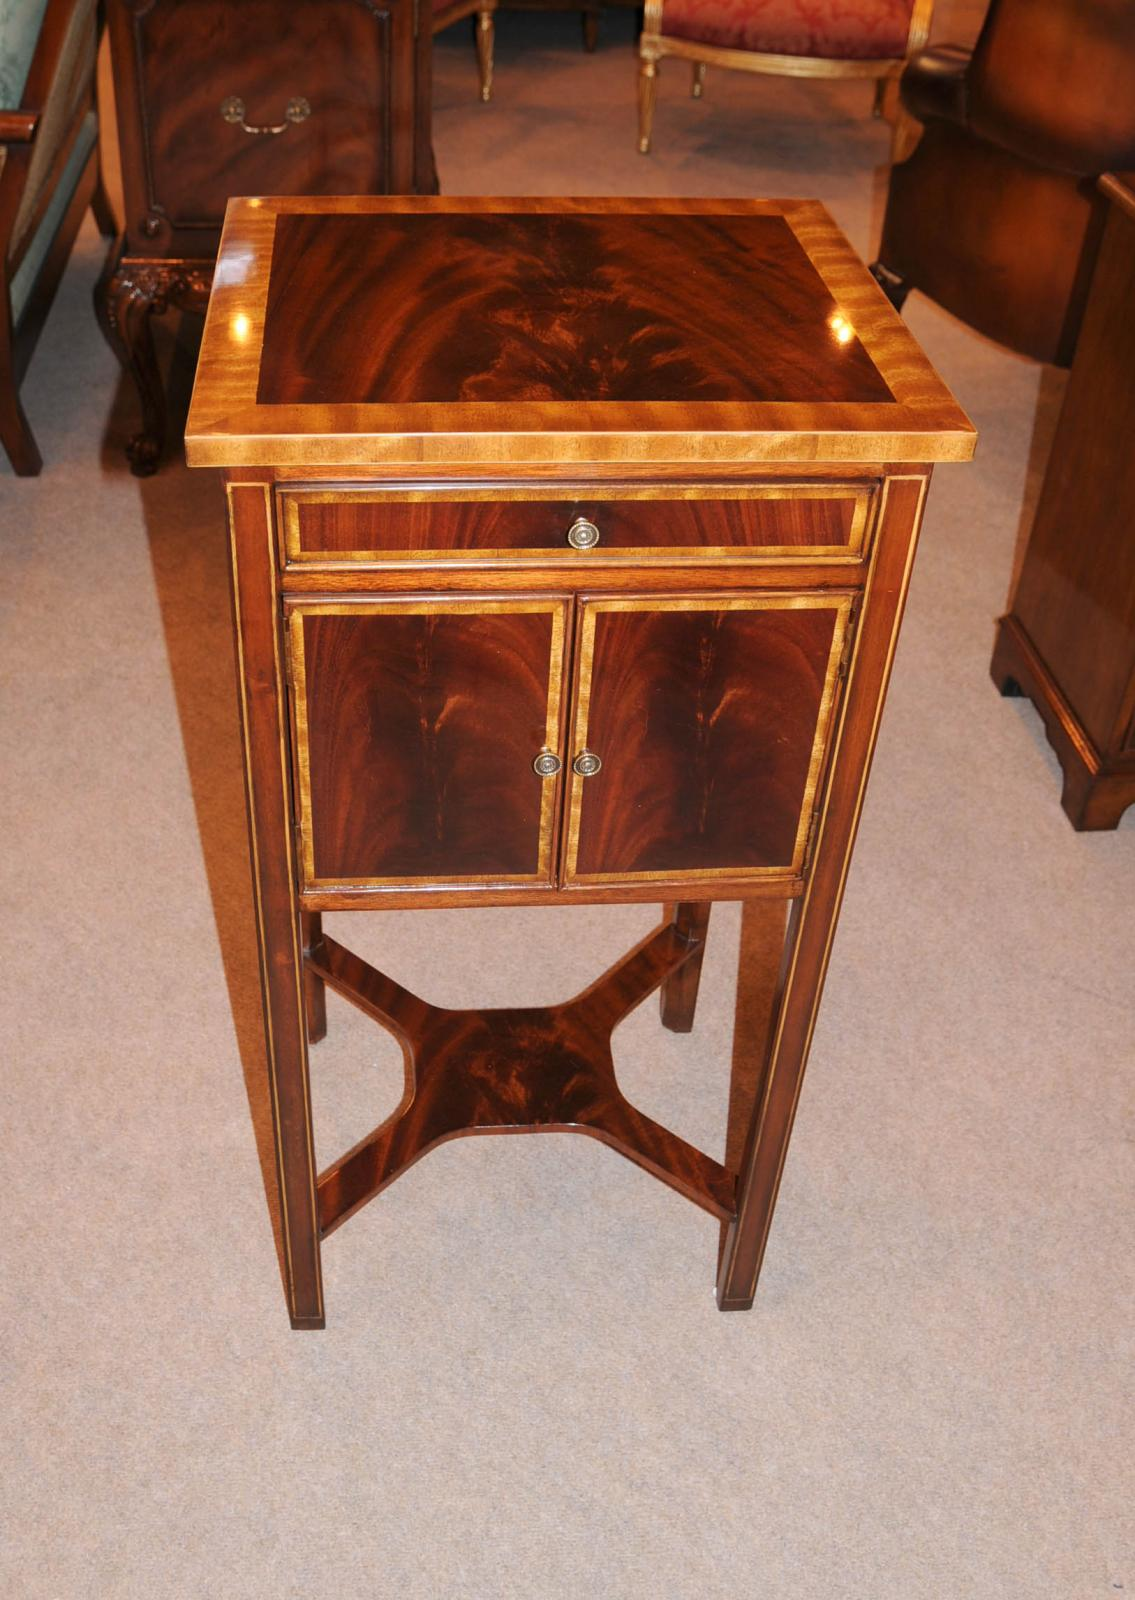 Flame mahogany regency bedside chest nightstand table ebay - Elegant types of nightstands ...